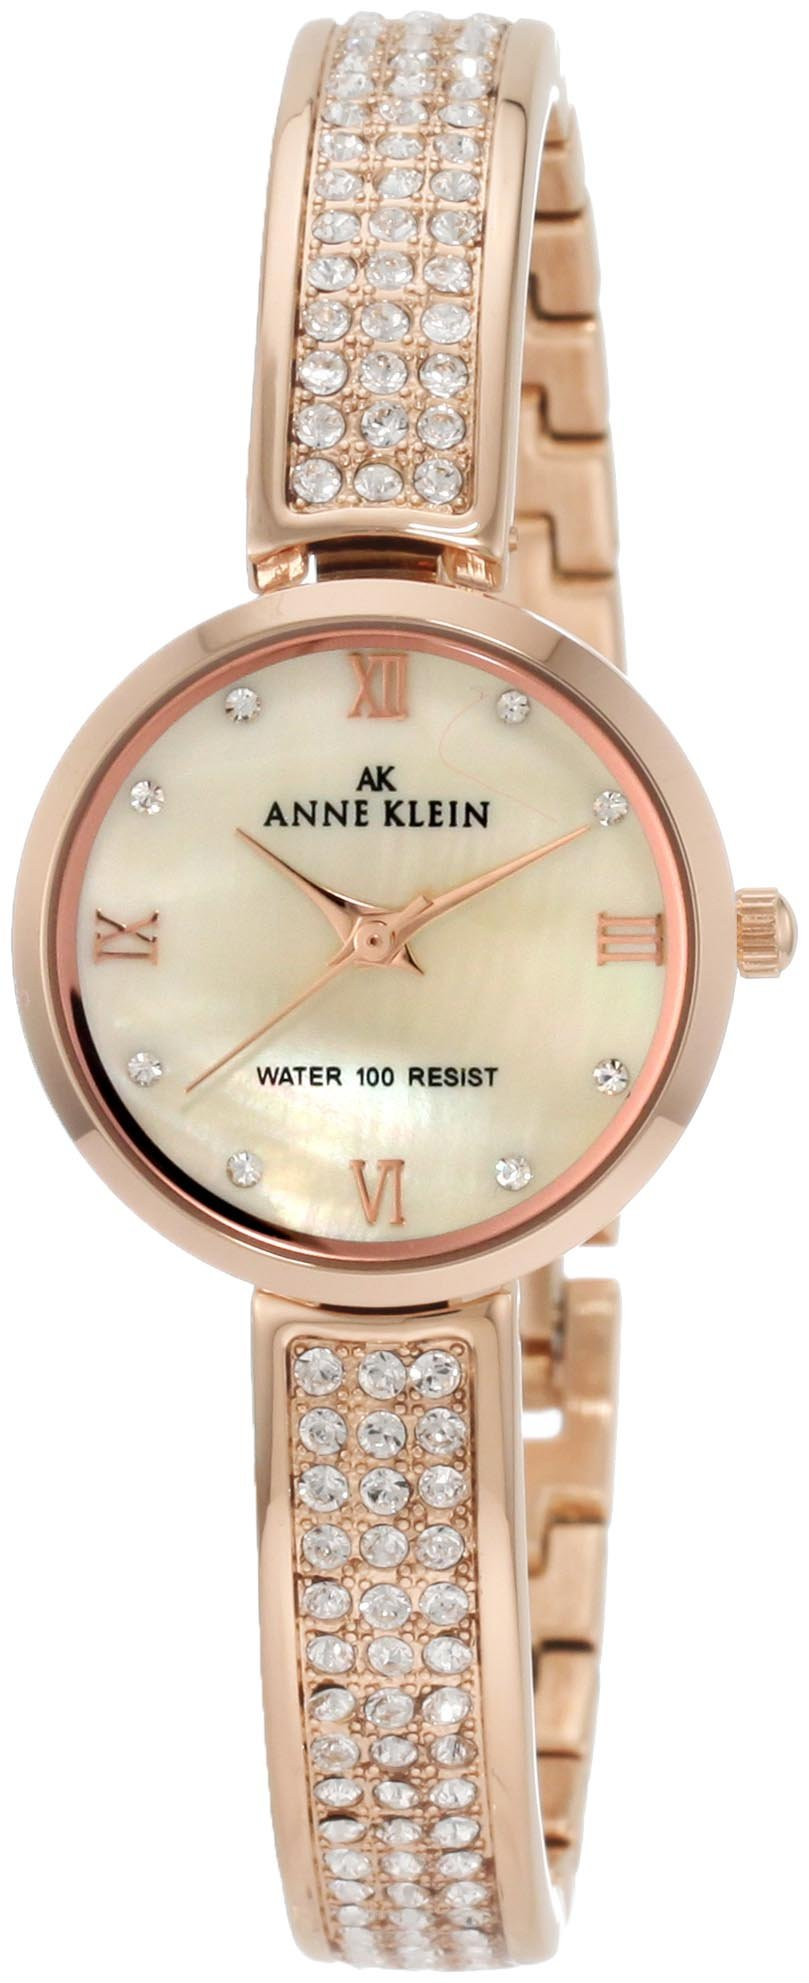 Anne Klein Women's 10/9786CMRG Swarovski Crystal Accented Rosegold-Tone Half Bangle Watch by Anne Klein